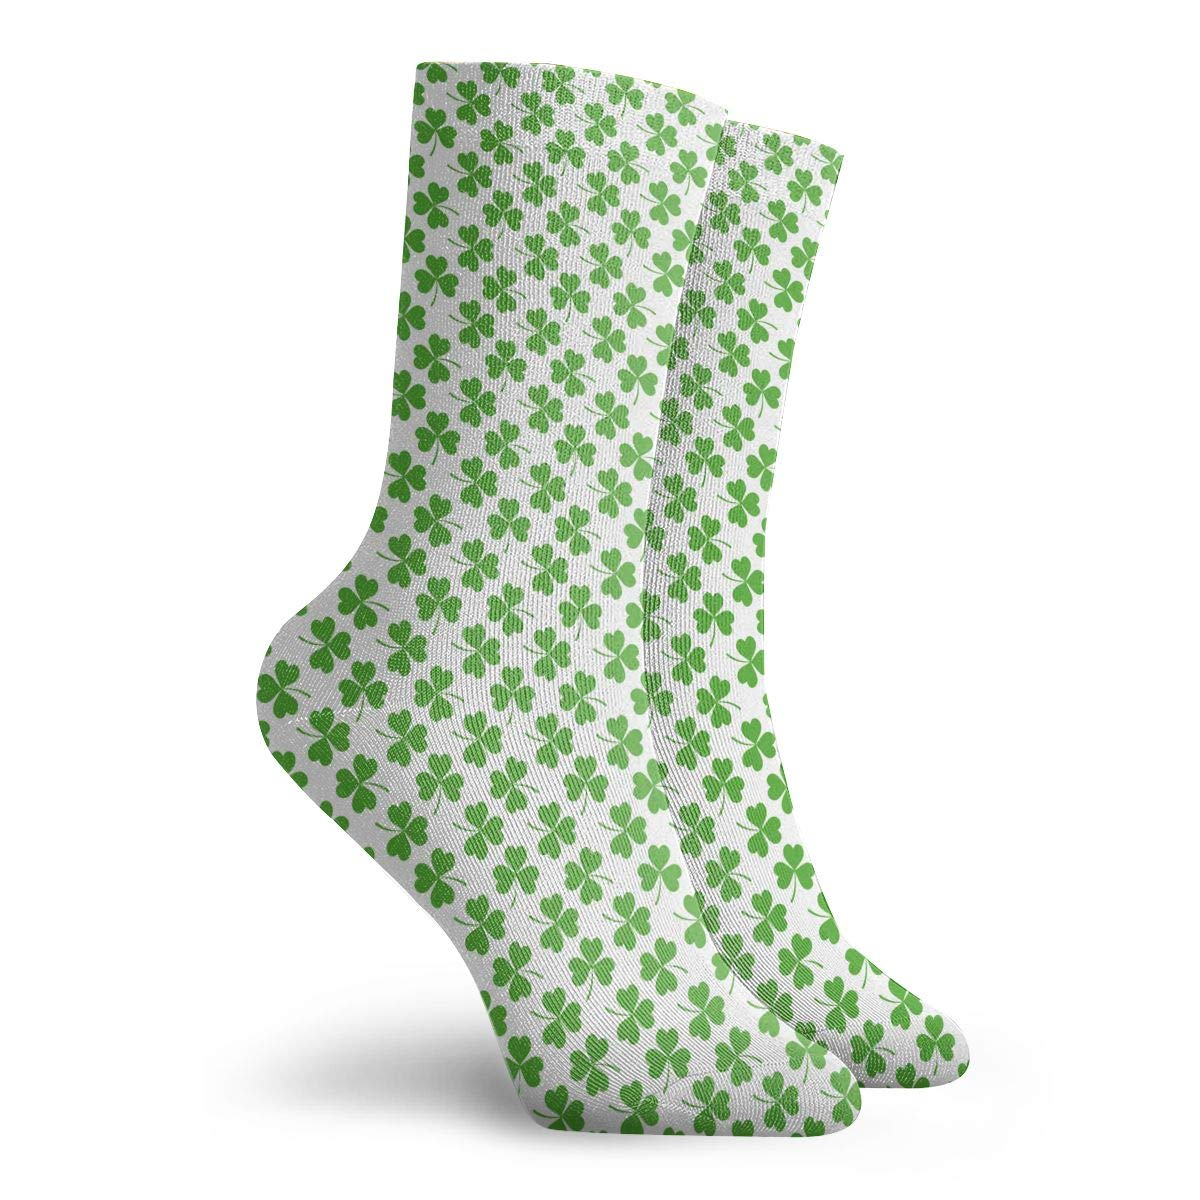 Unisex The Luckiest St.Patricks Day Clover Green Athletic Quarter Ankle Print Breathable Hiking Running Socks